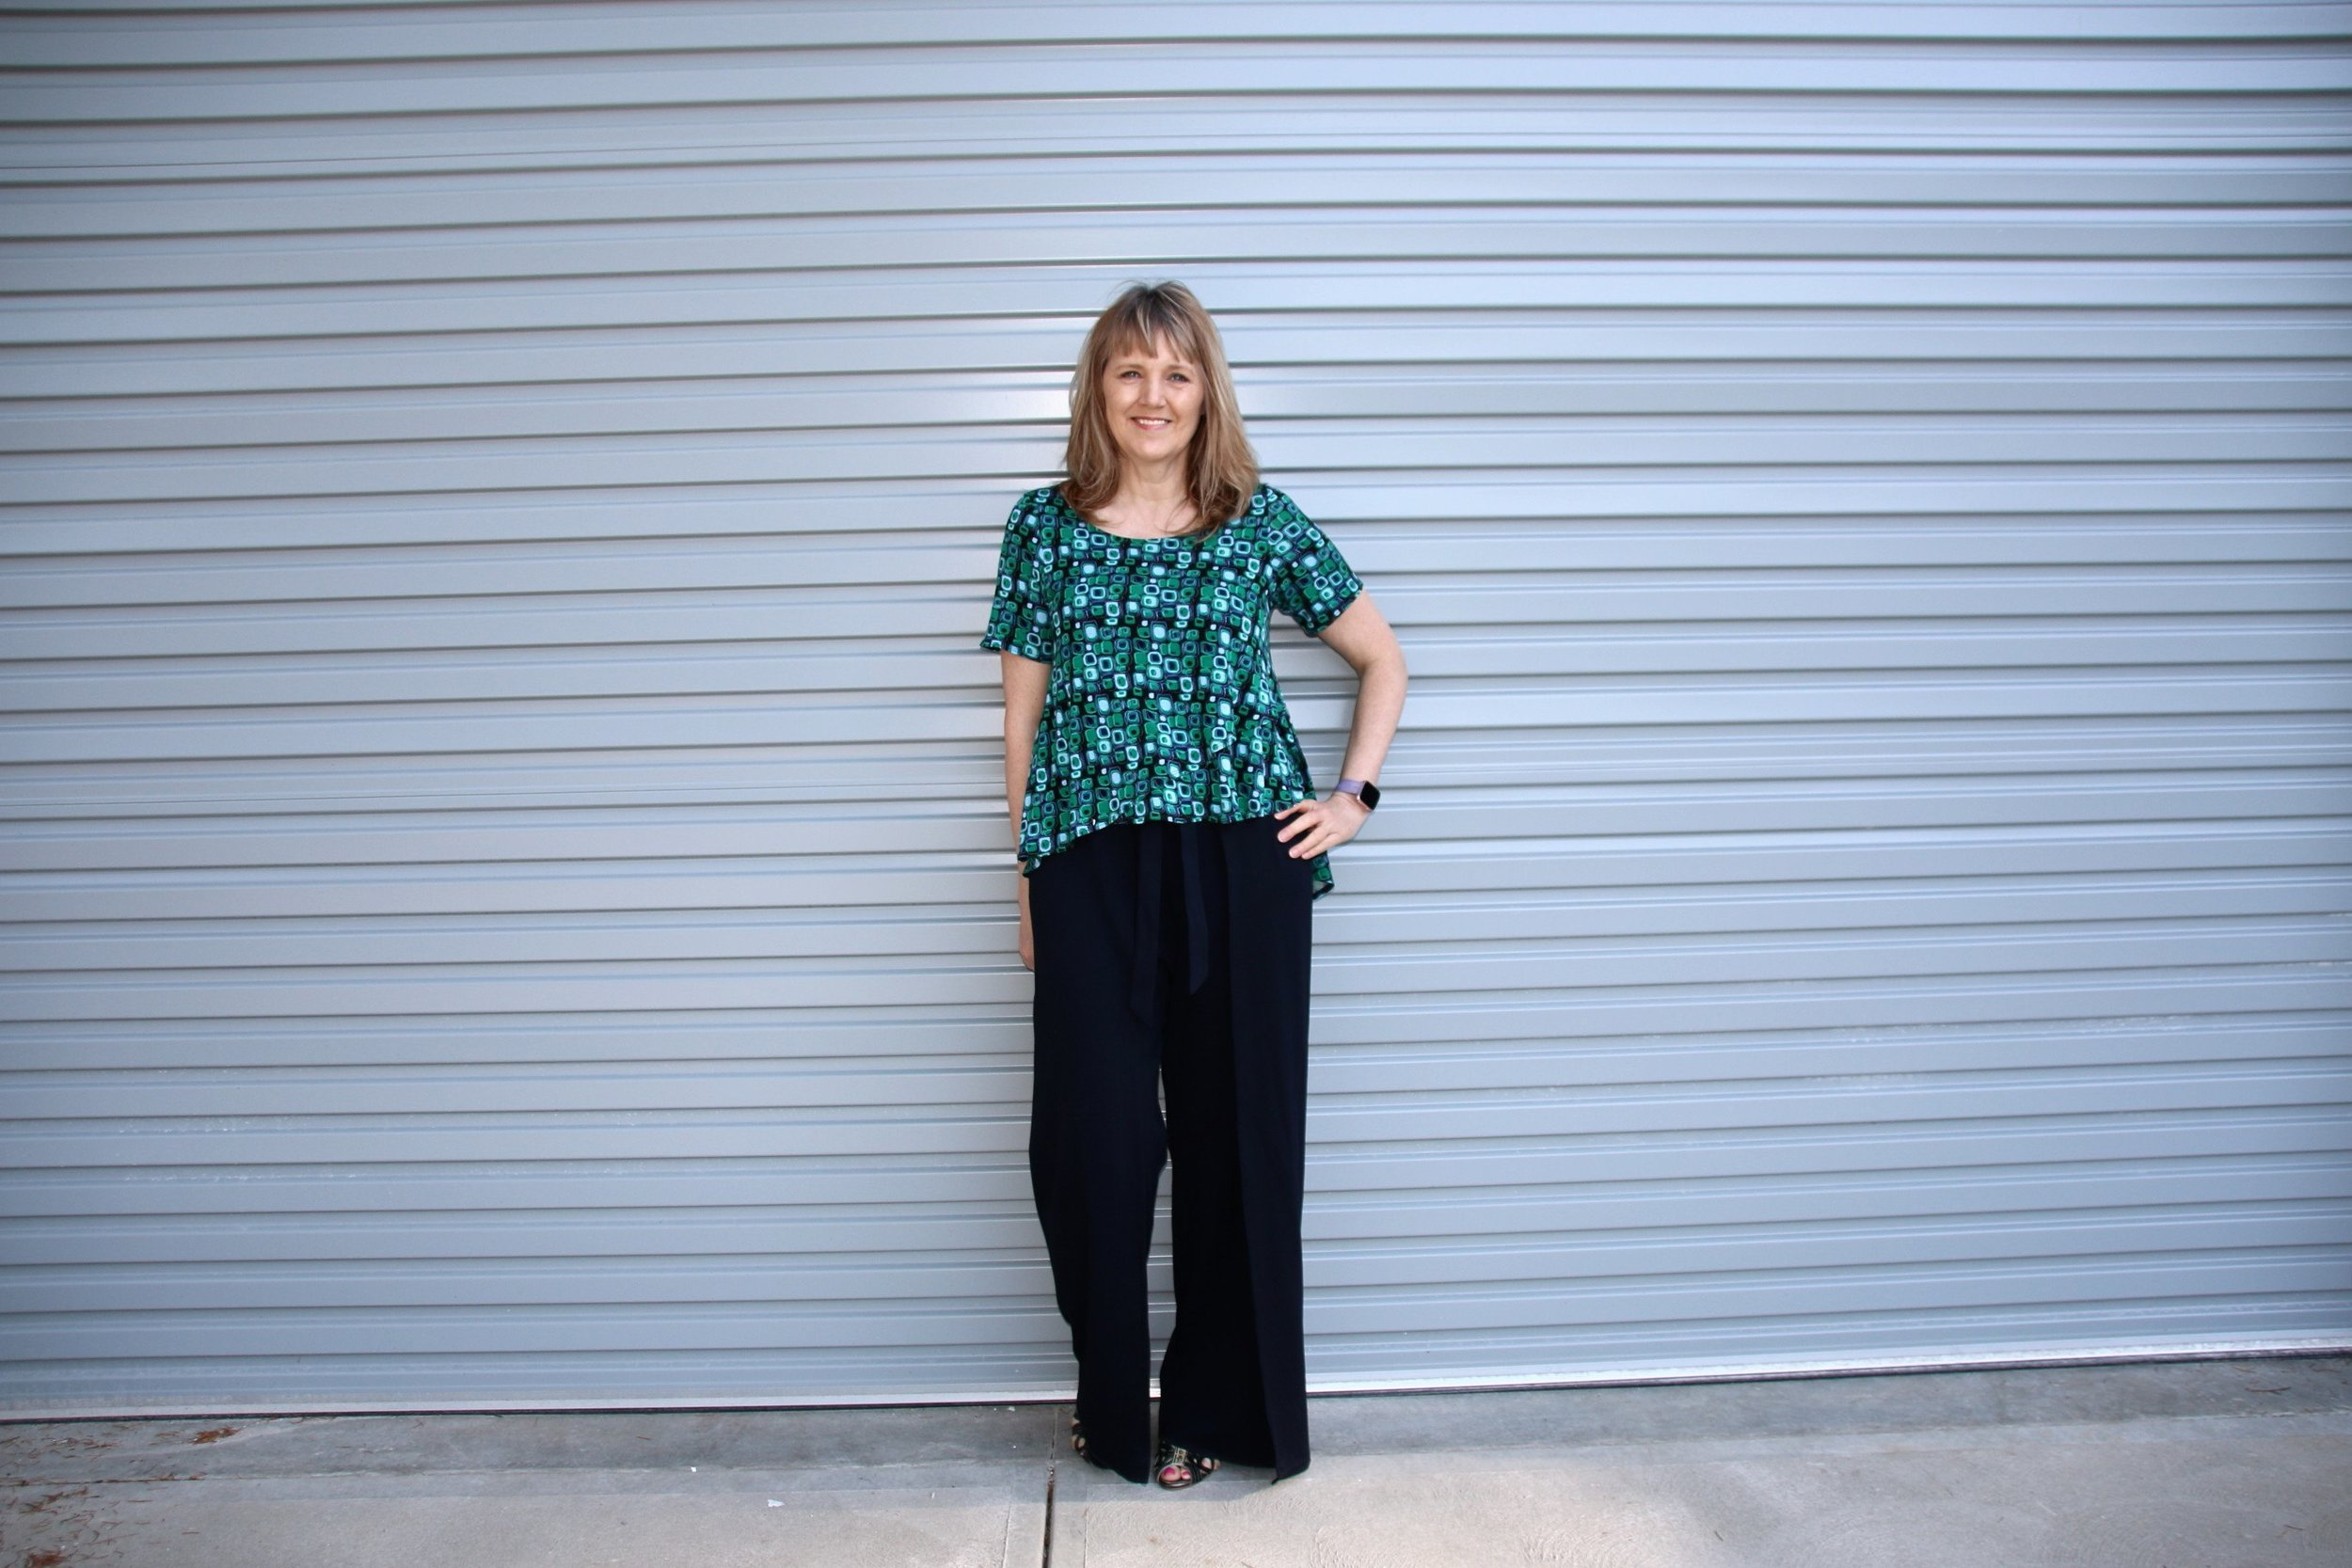 Flyaway Top and Wrap Pants Sewing Pattern